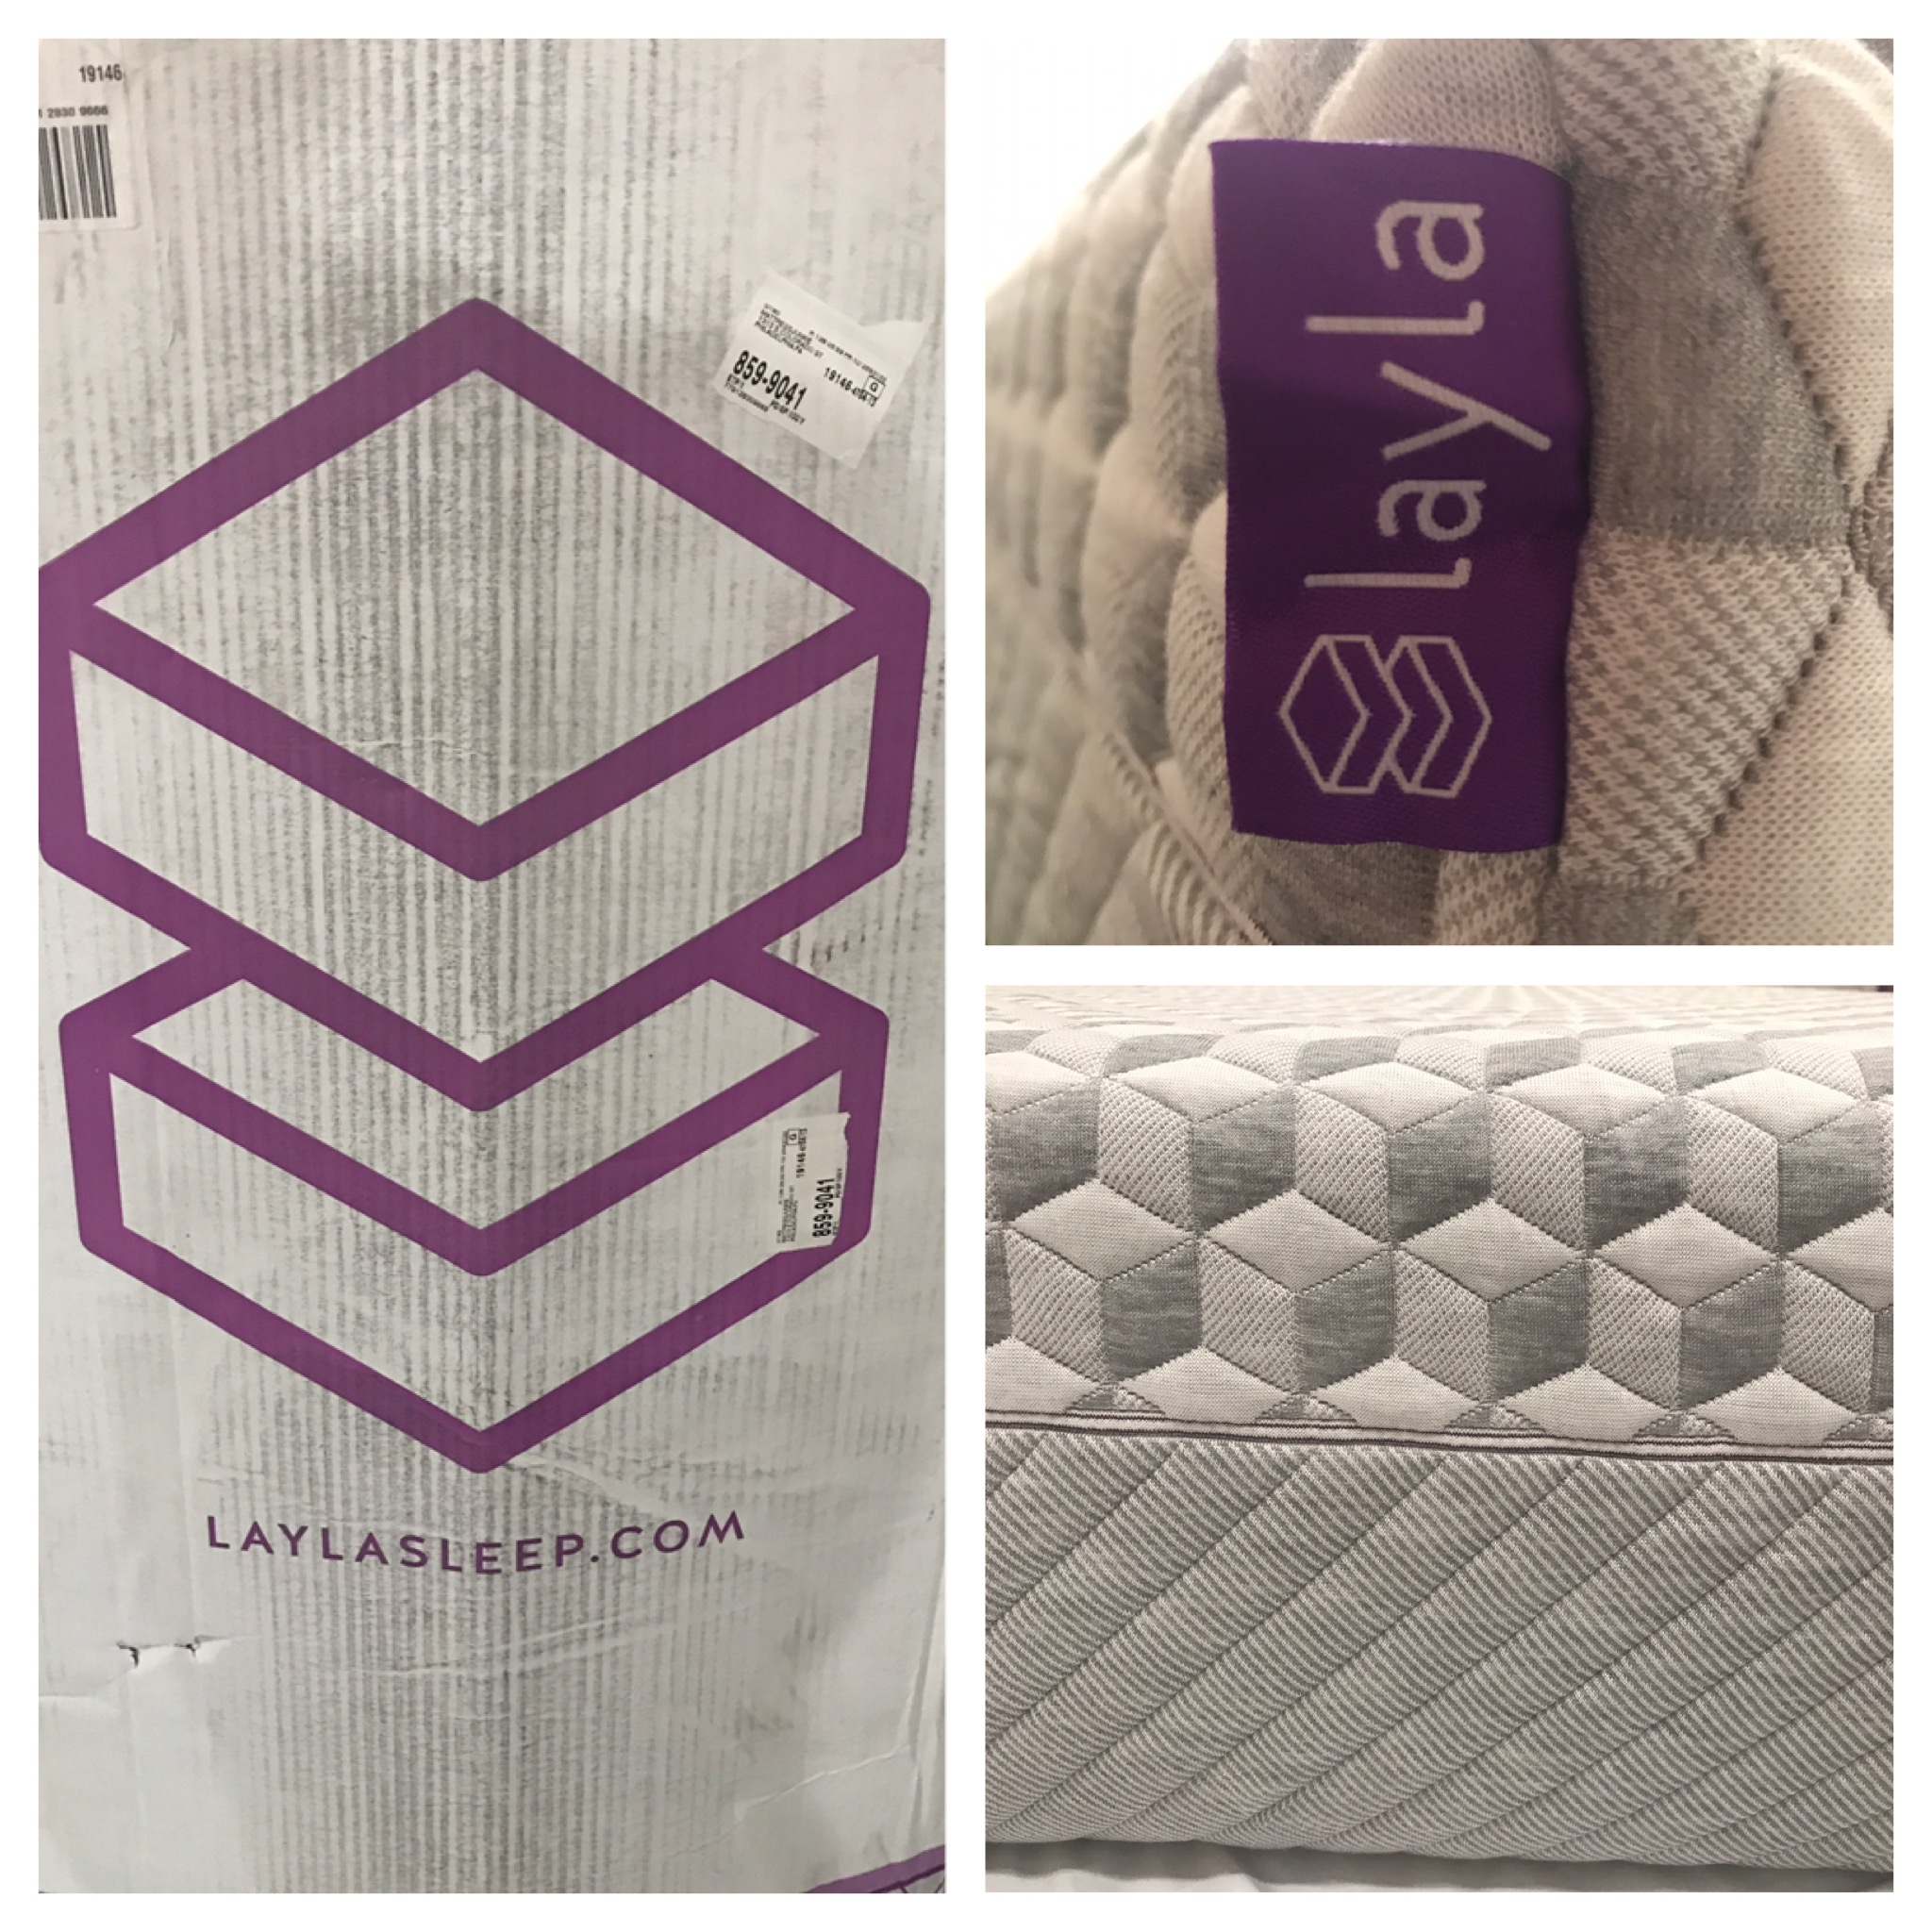 Layla Mattress Review Box Memory Foam Flippable Firmness